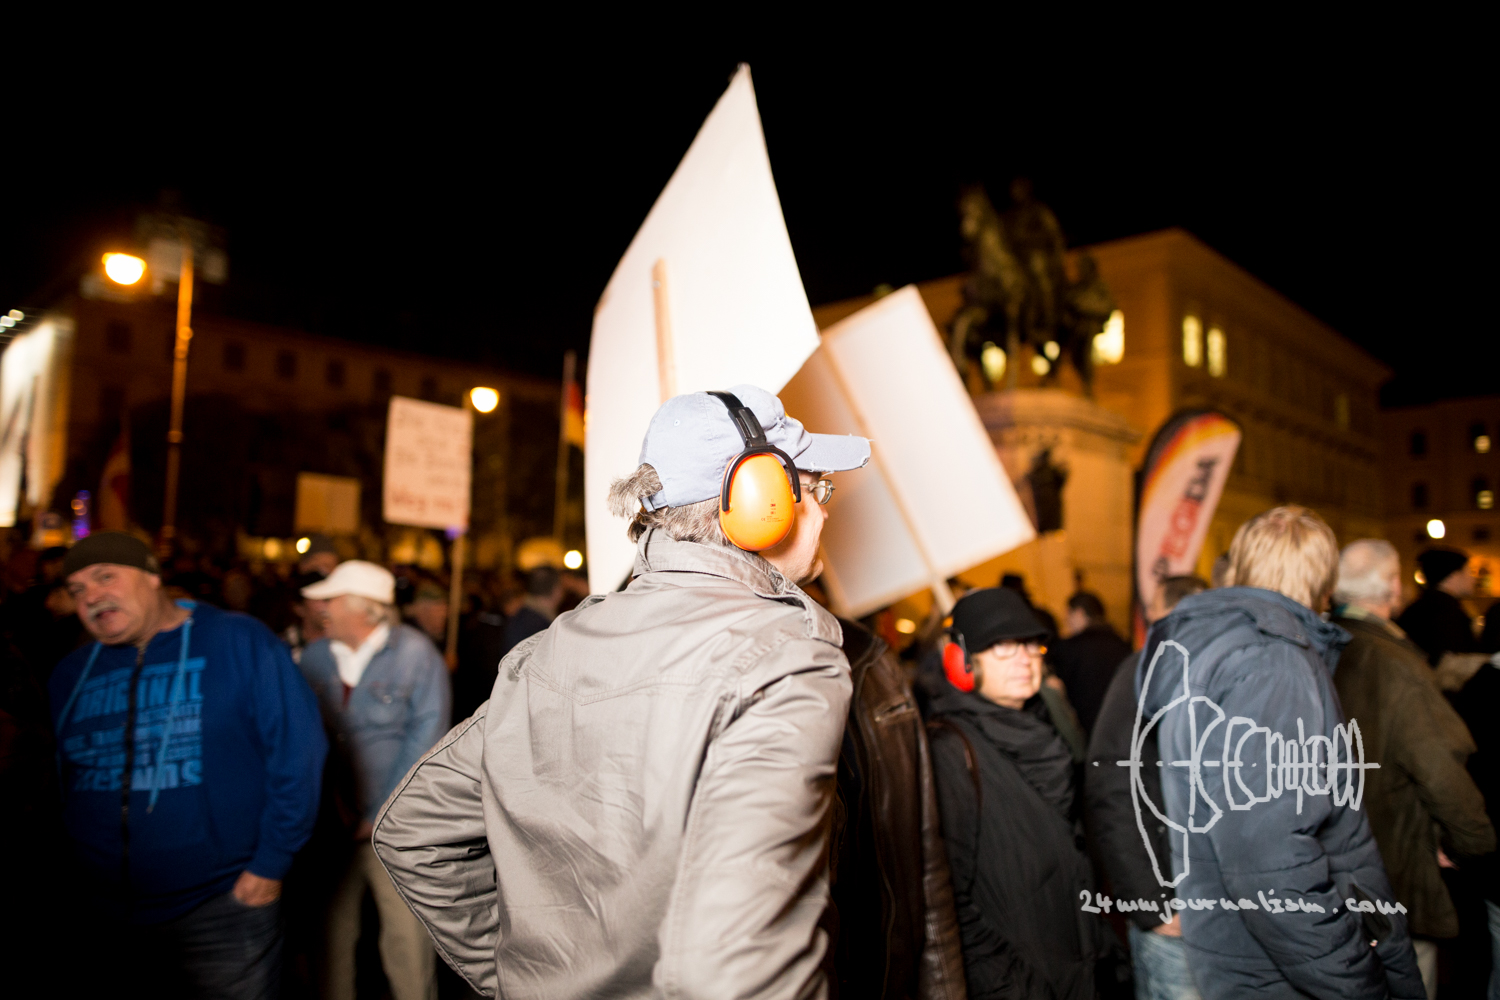 PMEmber of PEGIDA wears ear protection.